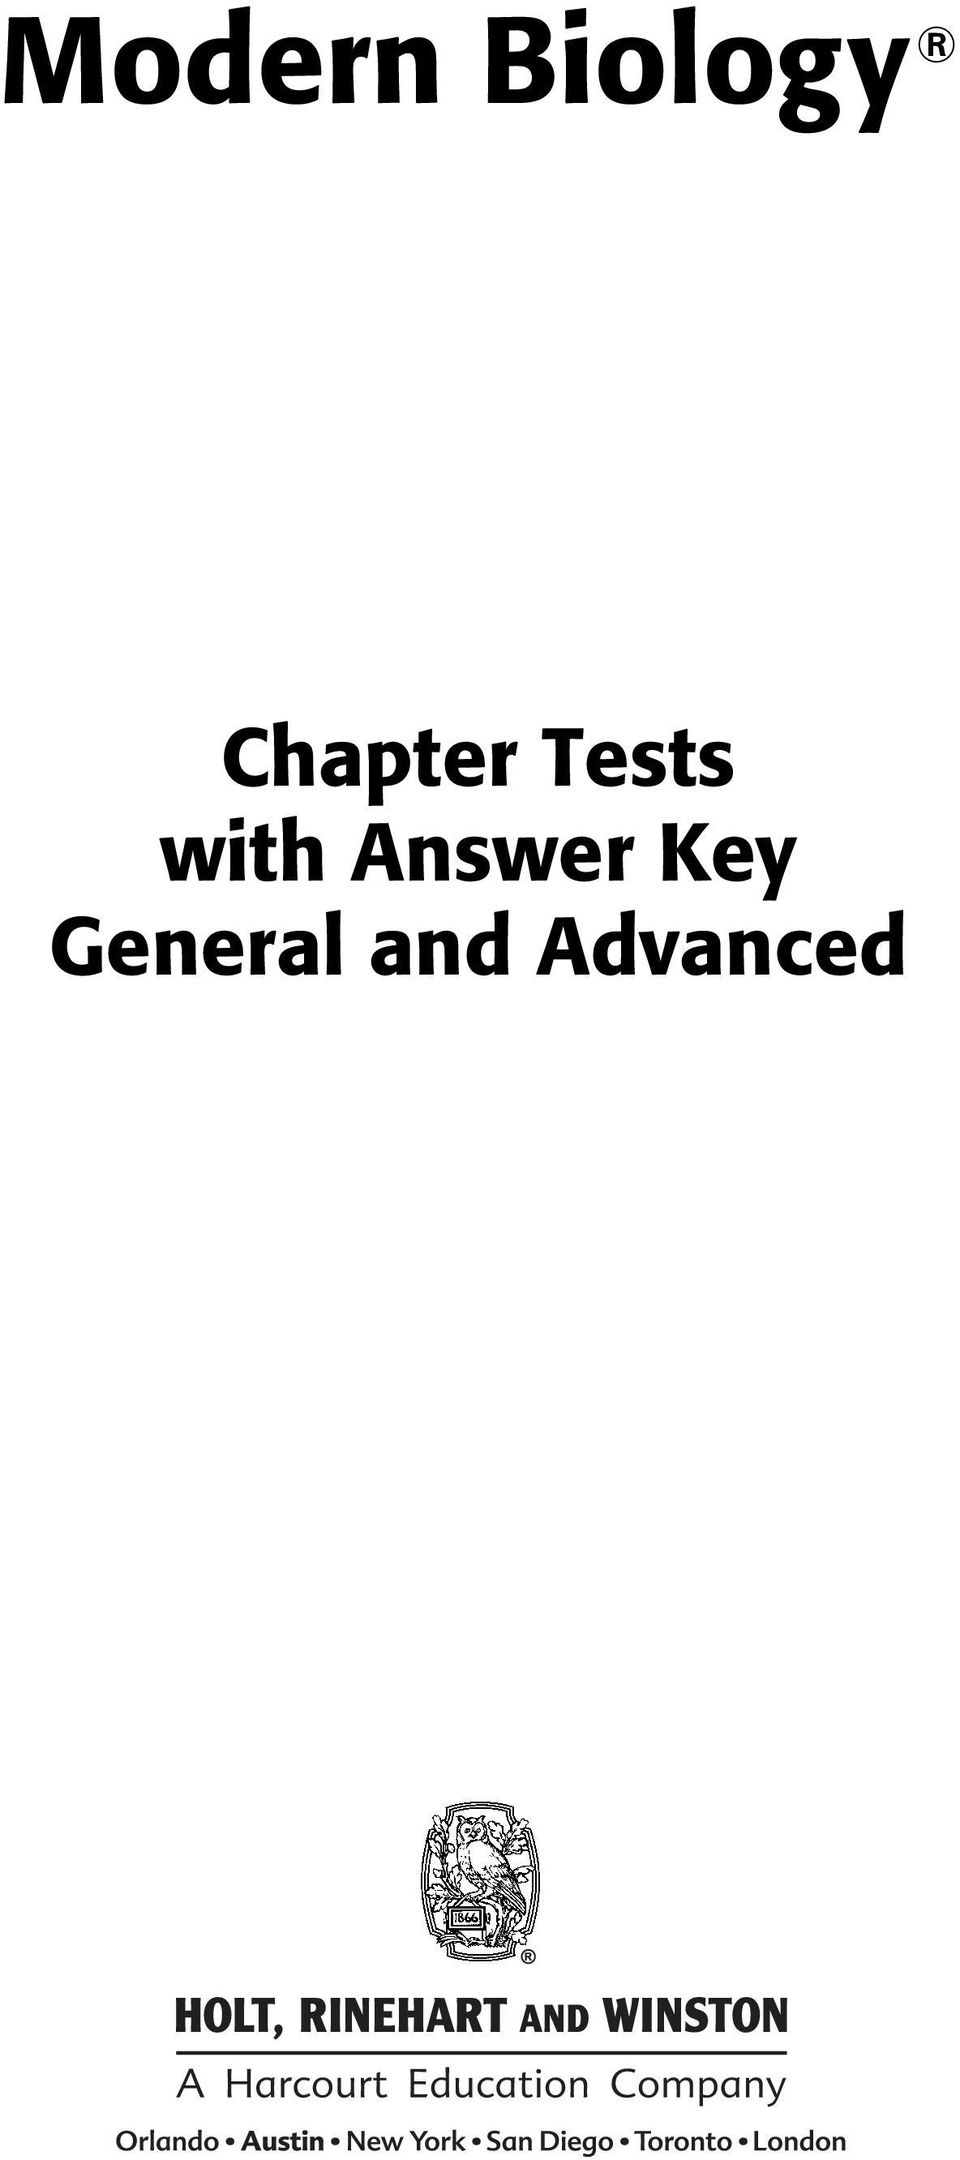 35 Array - modern biology chapter tests with answer key general and  advanced pdf rh docplayer net